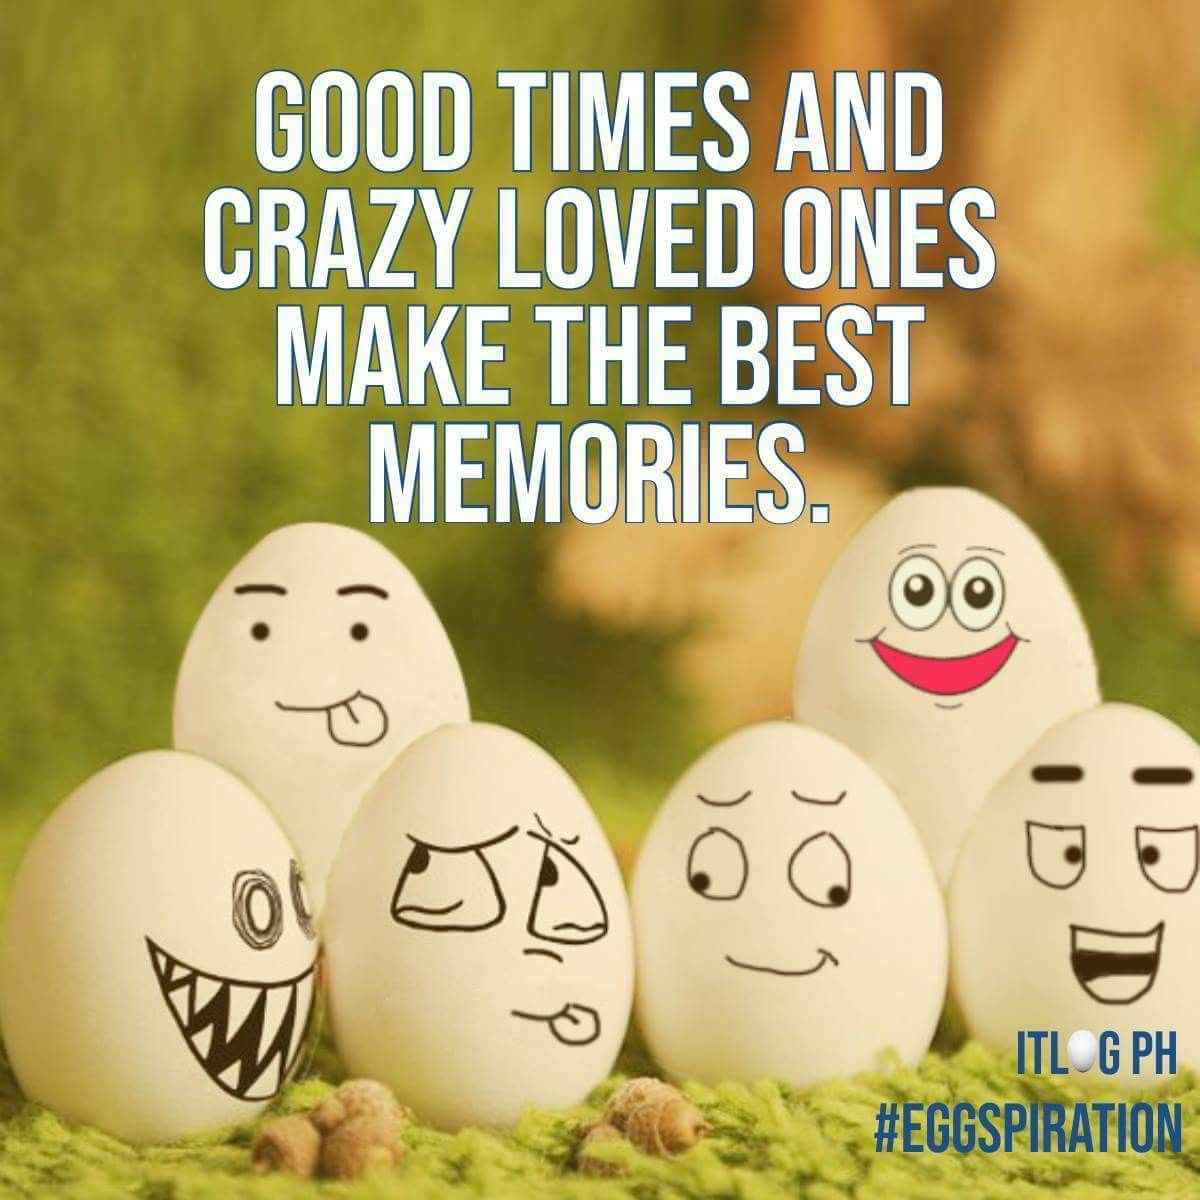 memories of shared laughter stories and fun eggsperiences a